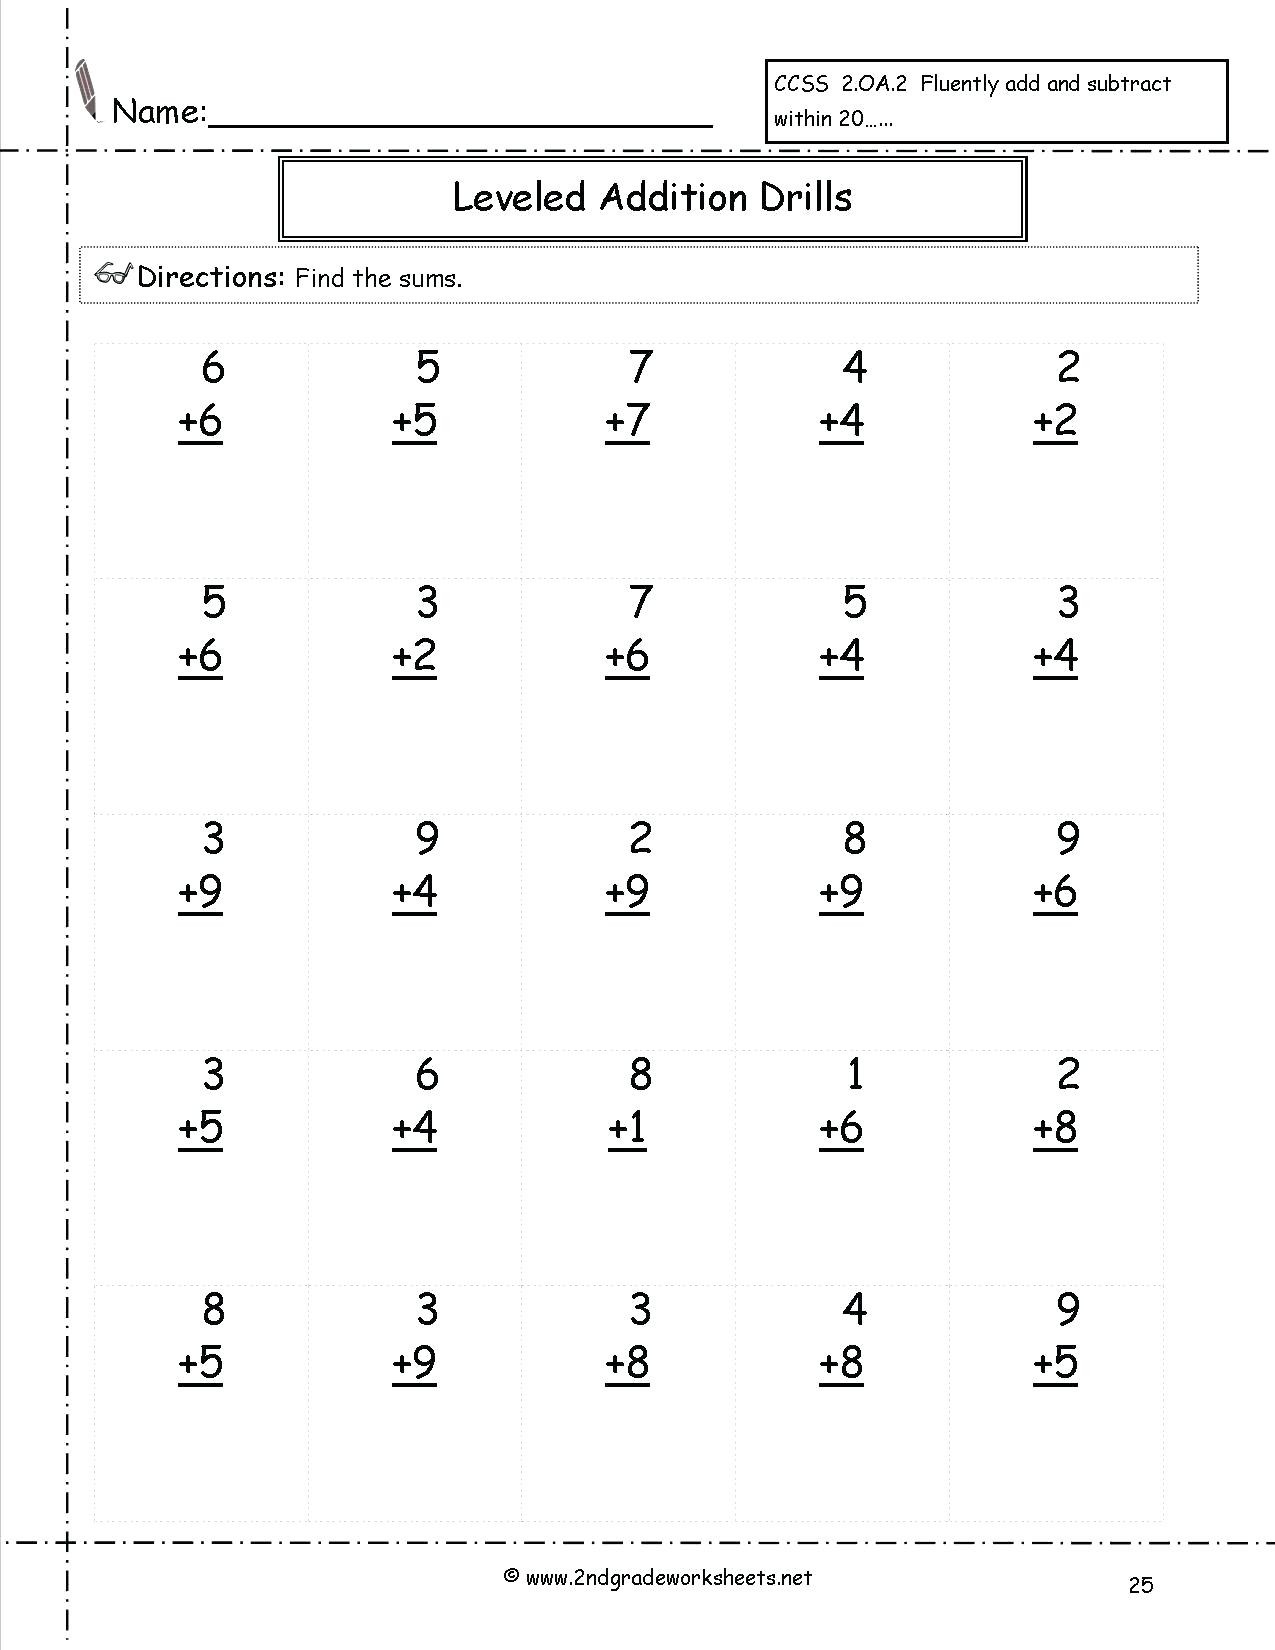 hight resolution of 3 Free Math Worksheets Third Grade 3 Counting Money Money In Words -  apocalomegaproductions.com